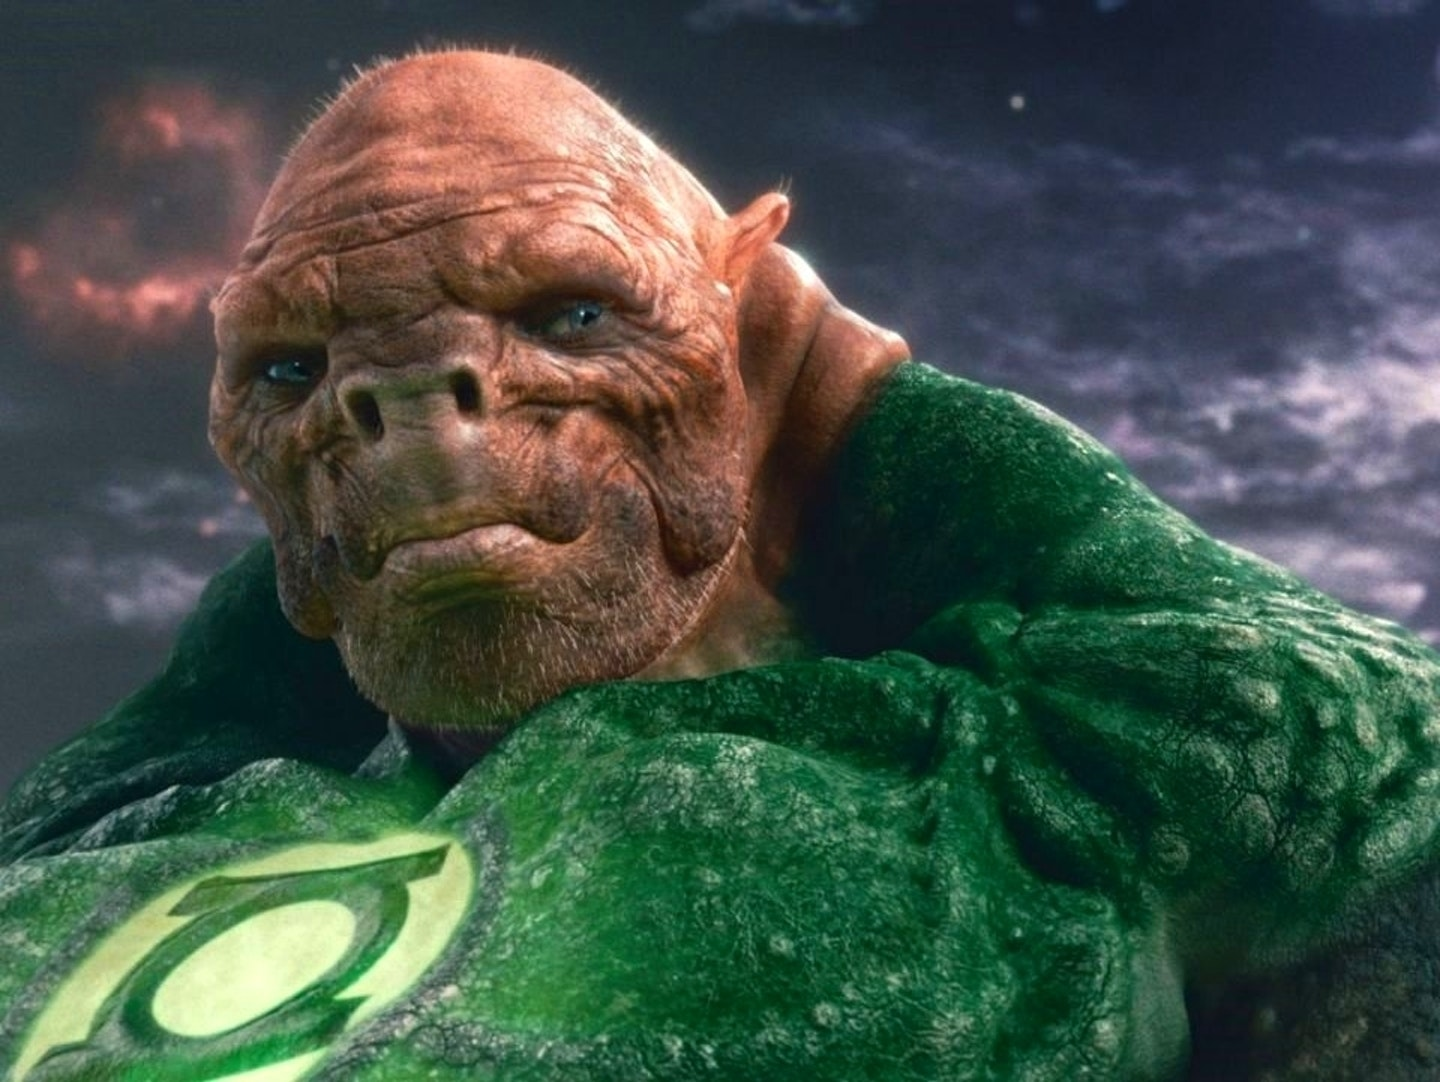 'Justice League' Might Get a Freaky Alien Green Lantern